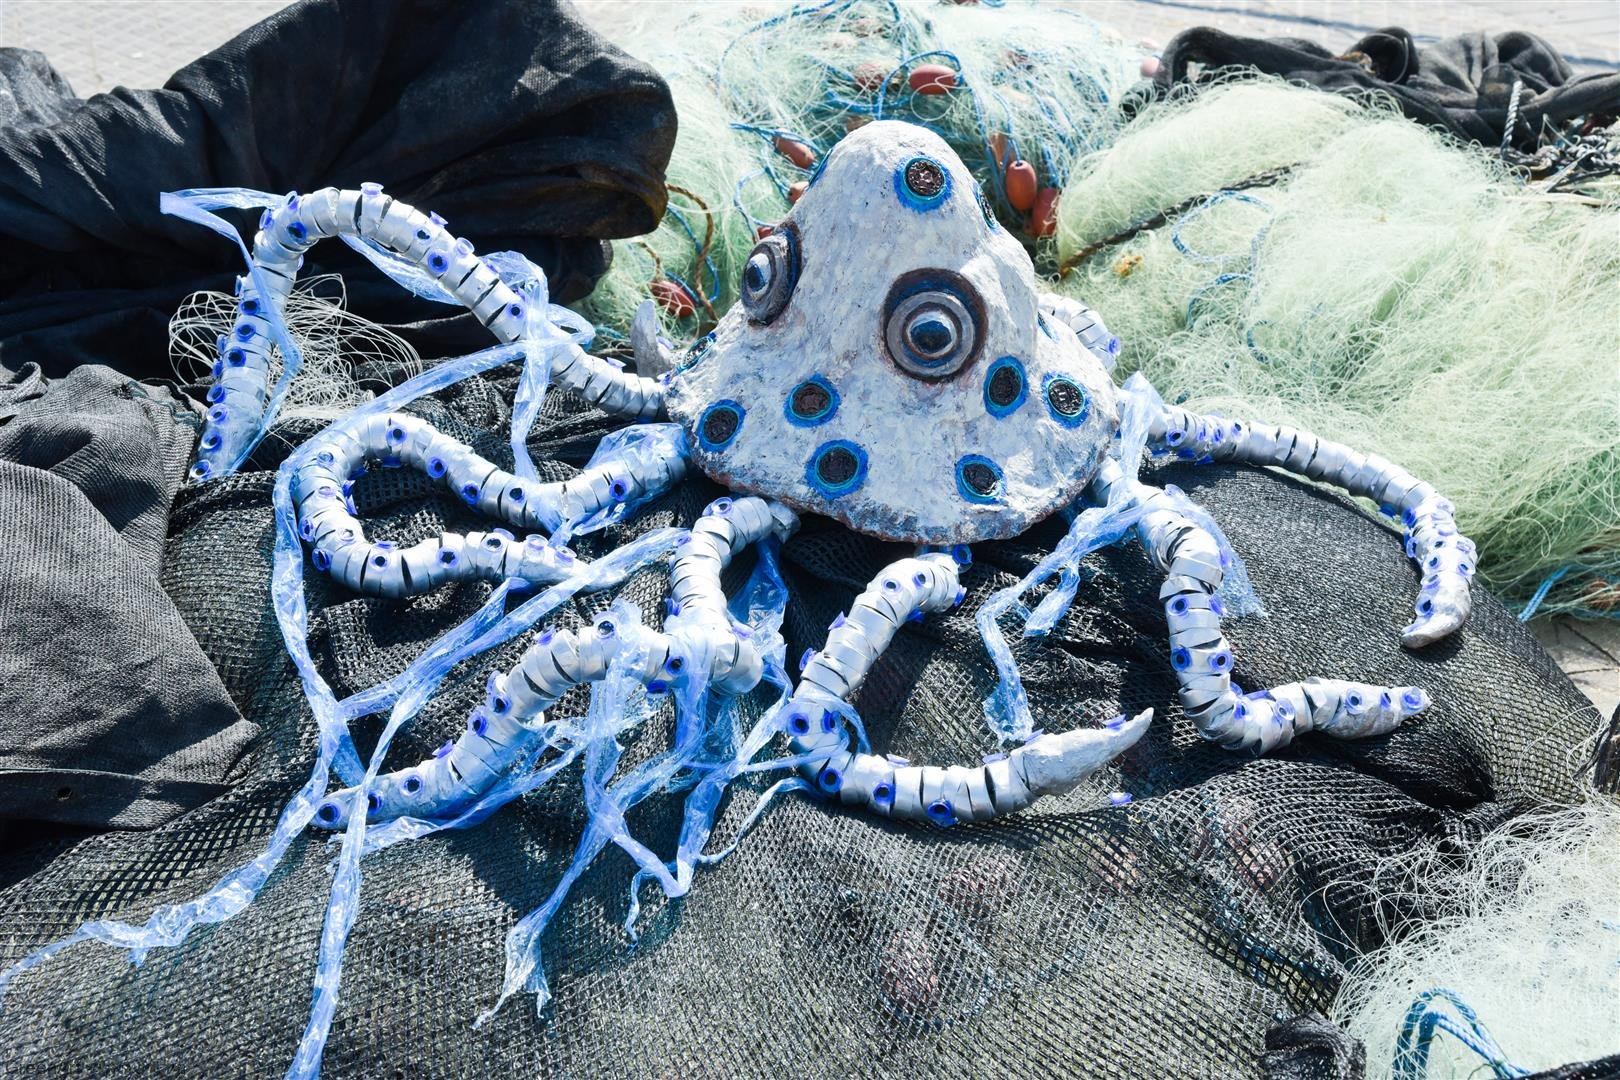 The Blue Octopus Rings – Ecological art